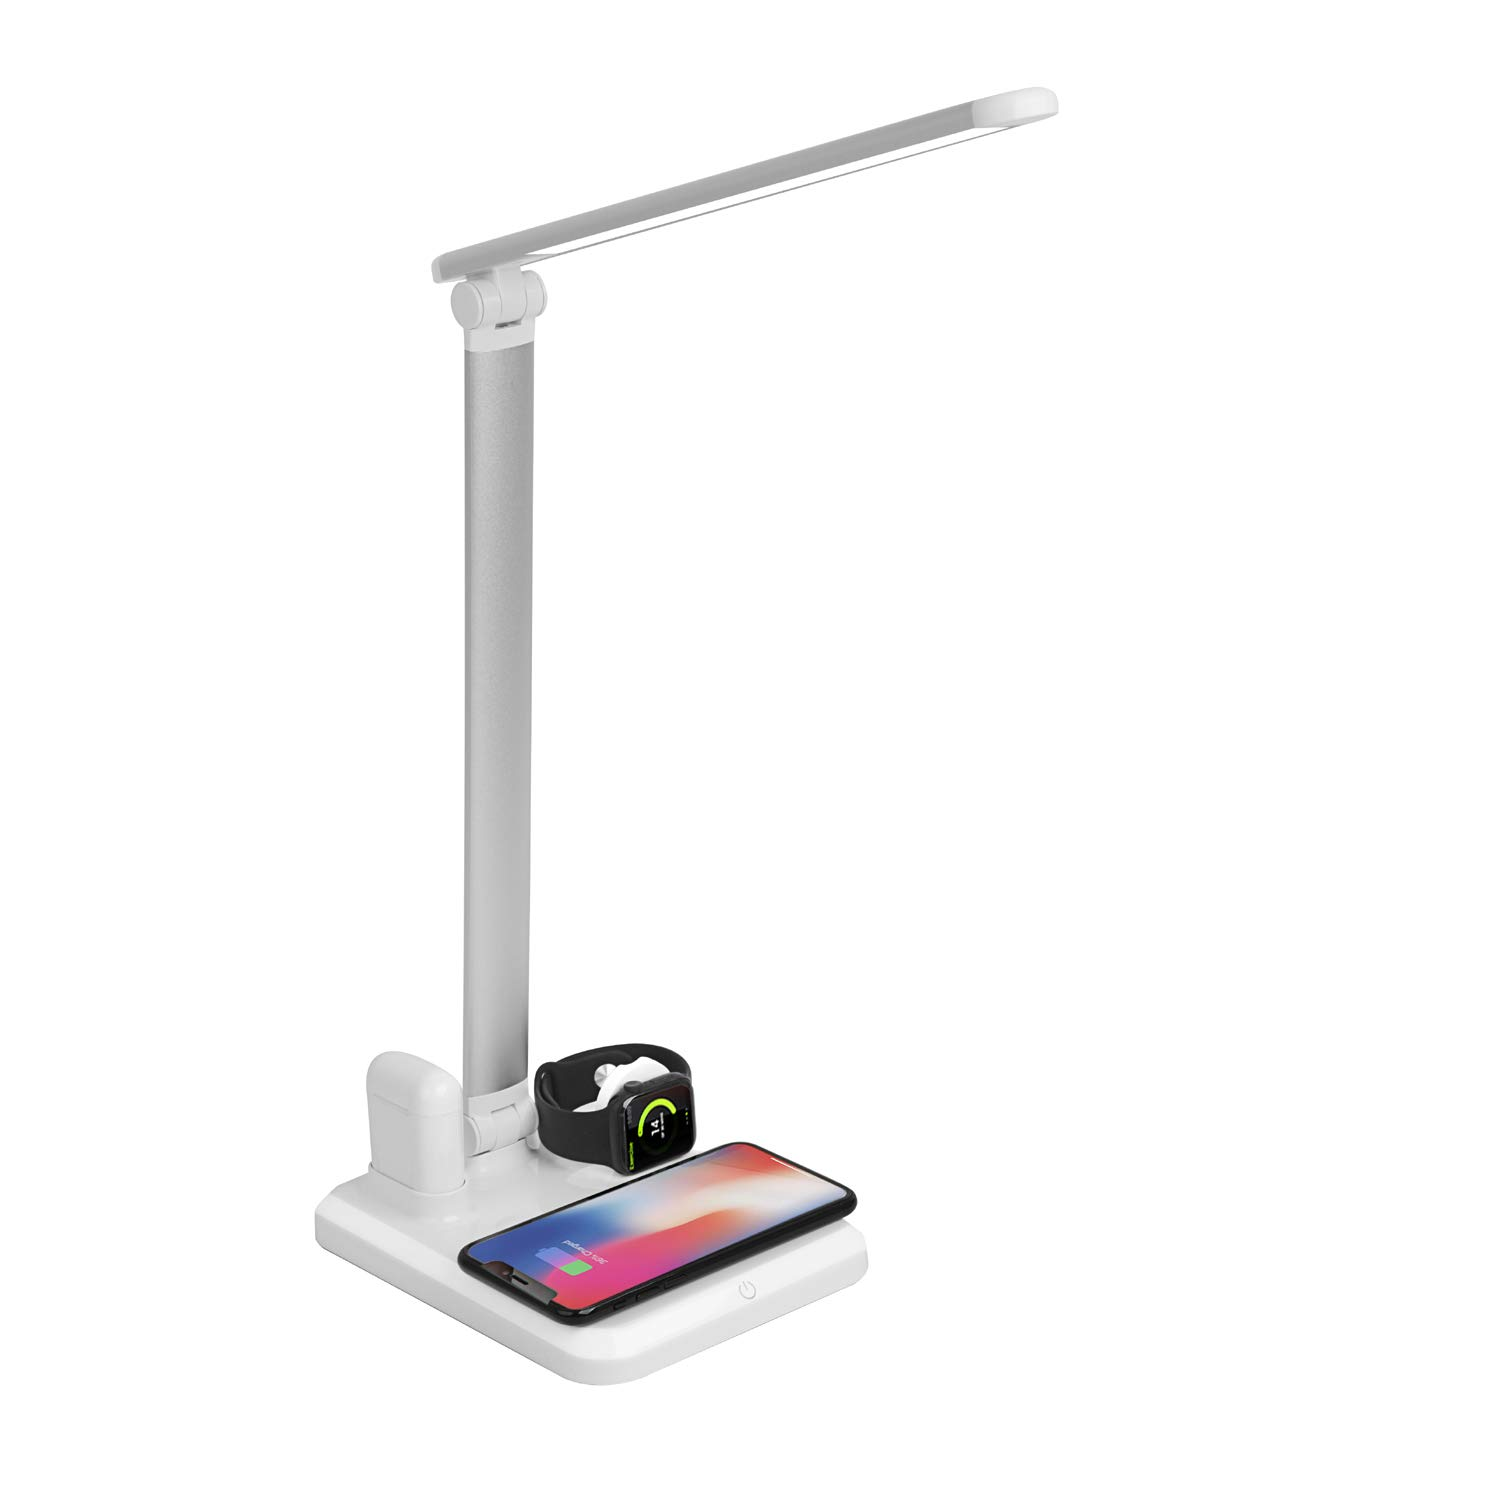 Trustown 4 in 1 Wireless Charger Stand LED Desk Lamp,USB Charging Port, Fast Wireless Charging Station Compatible with Apple Watch Airpods iPhone Xs Max/XR/X/8 Plus, Samsung S10+/S9+/S8/S7,(white)